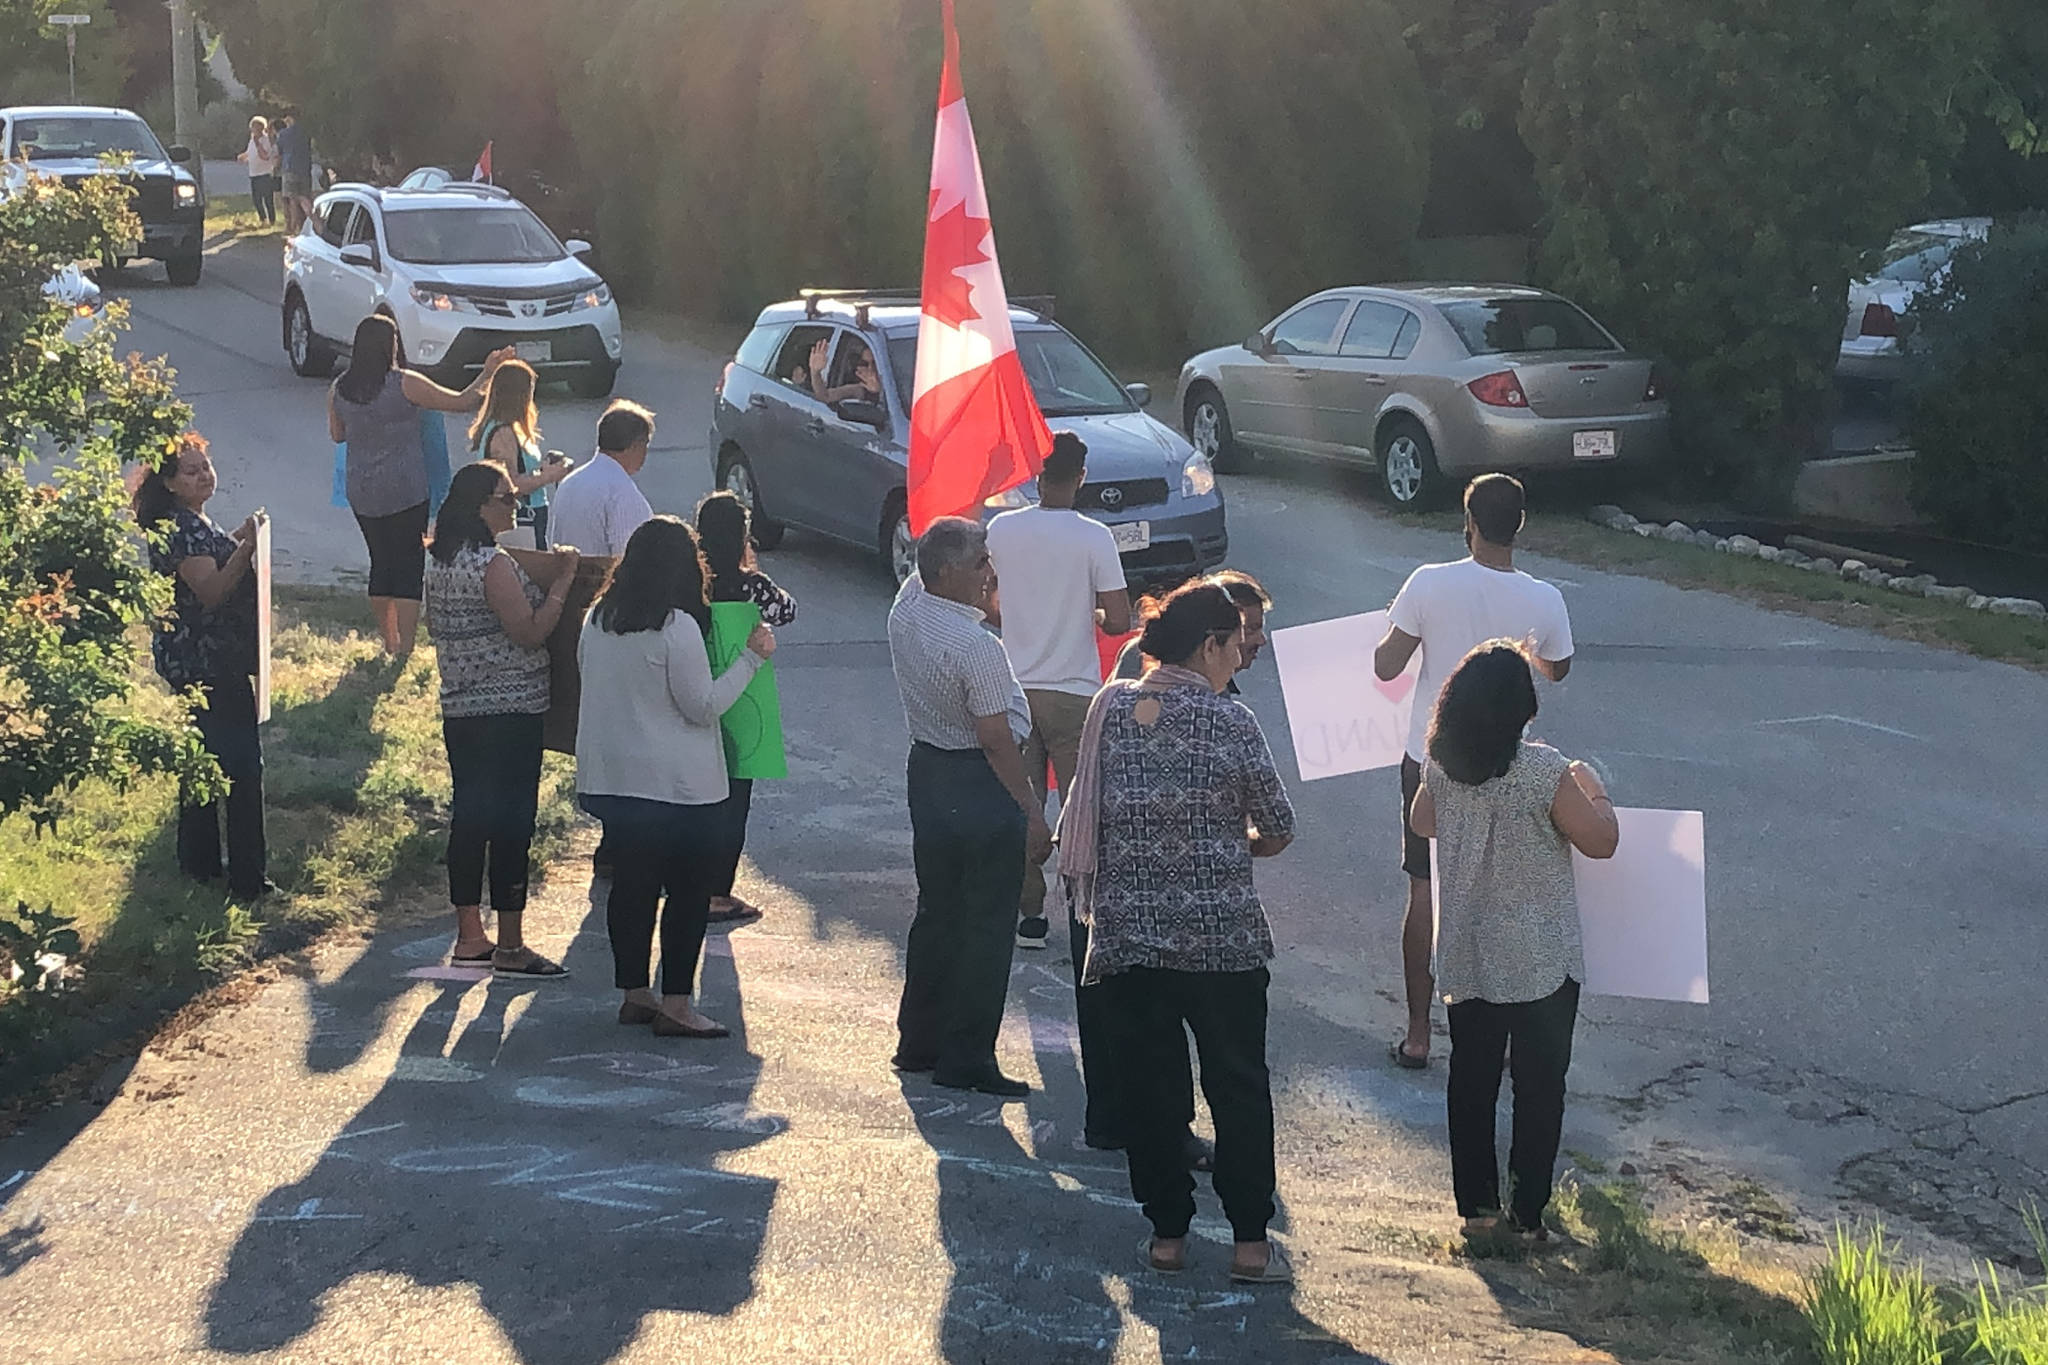 Hundreds of Summerland residents honked and waved in a show of support as they drove past the Lekhi family home on Hespeler Road on July 16. The home had been vandalized and racist graffiti had been spray painted on the walls on July 13. (John Arendt - Summerland Review)